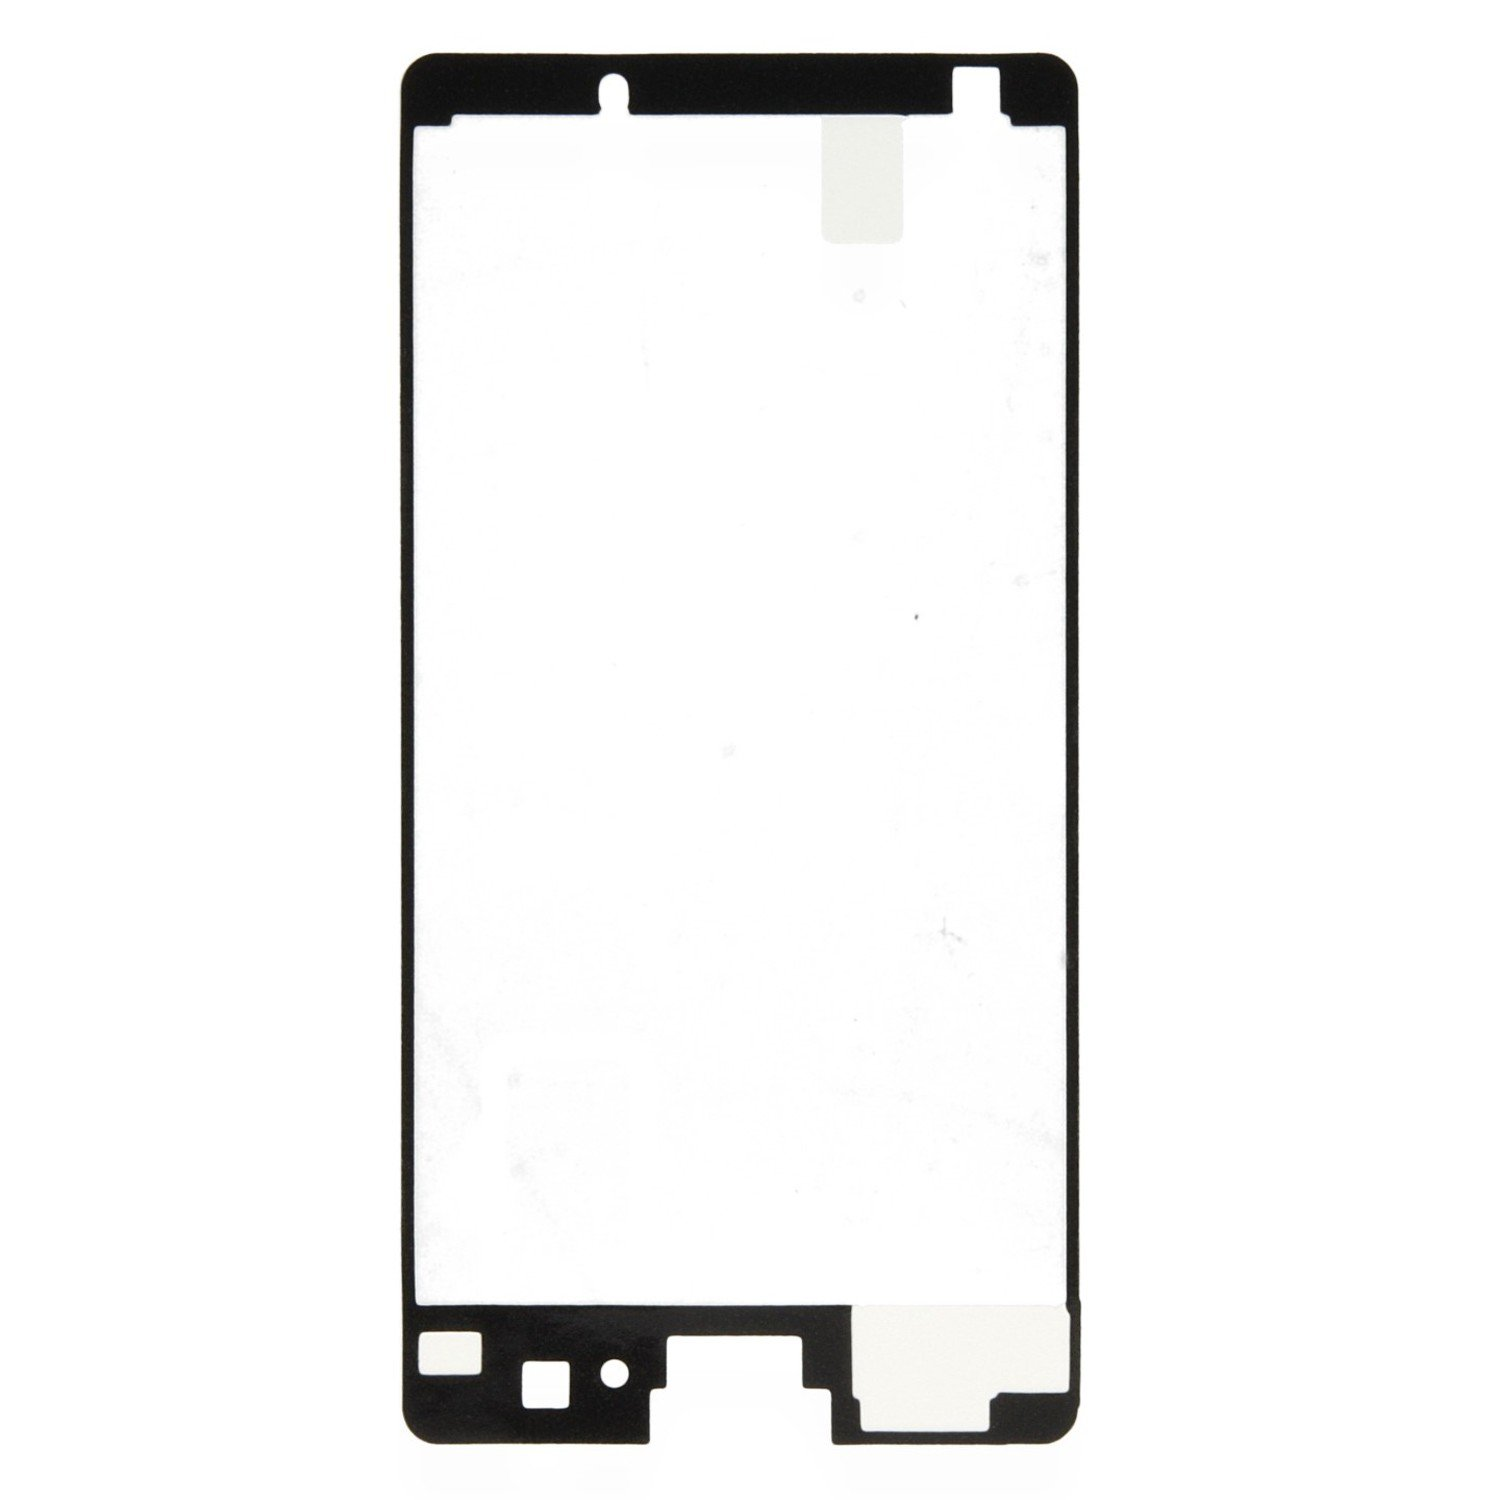 Sony Xperia Z1 Compact plak laag onder display LCD